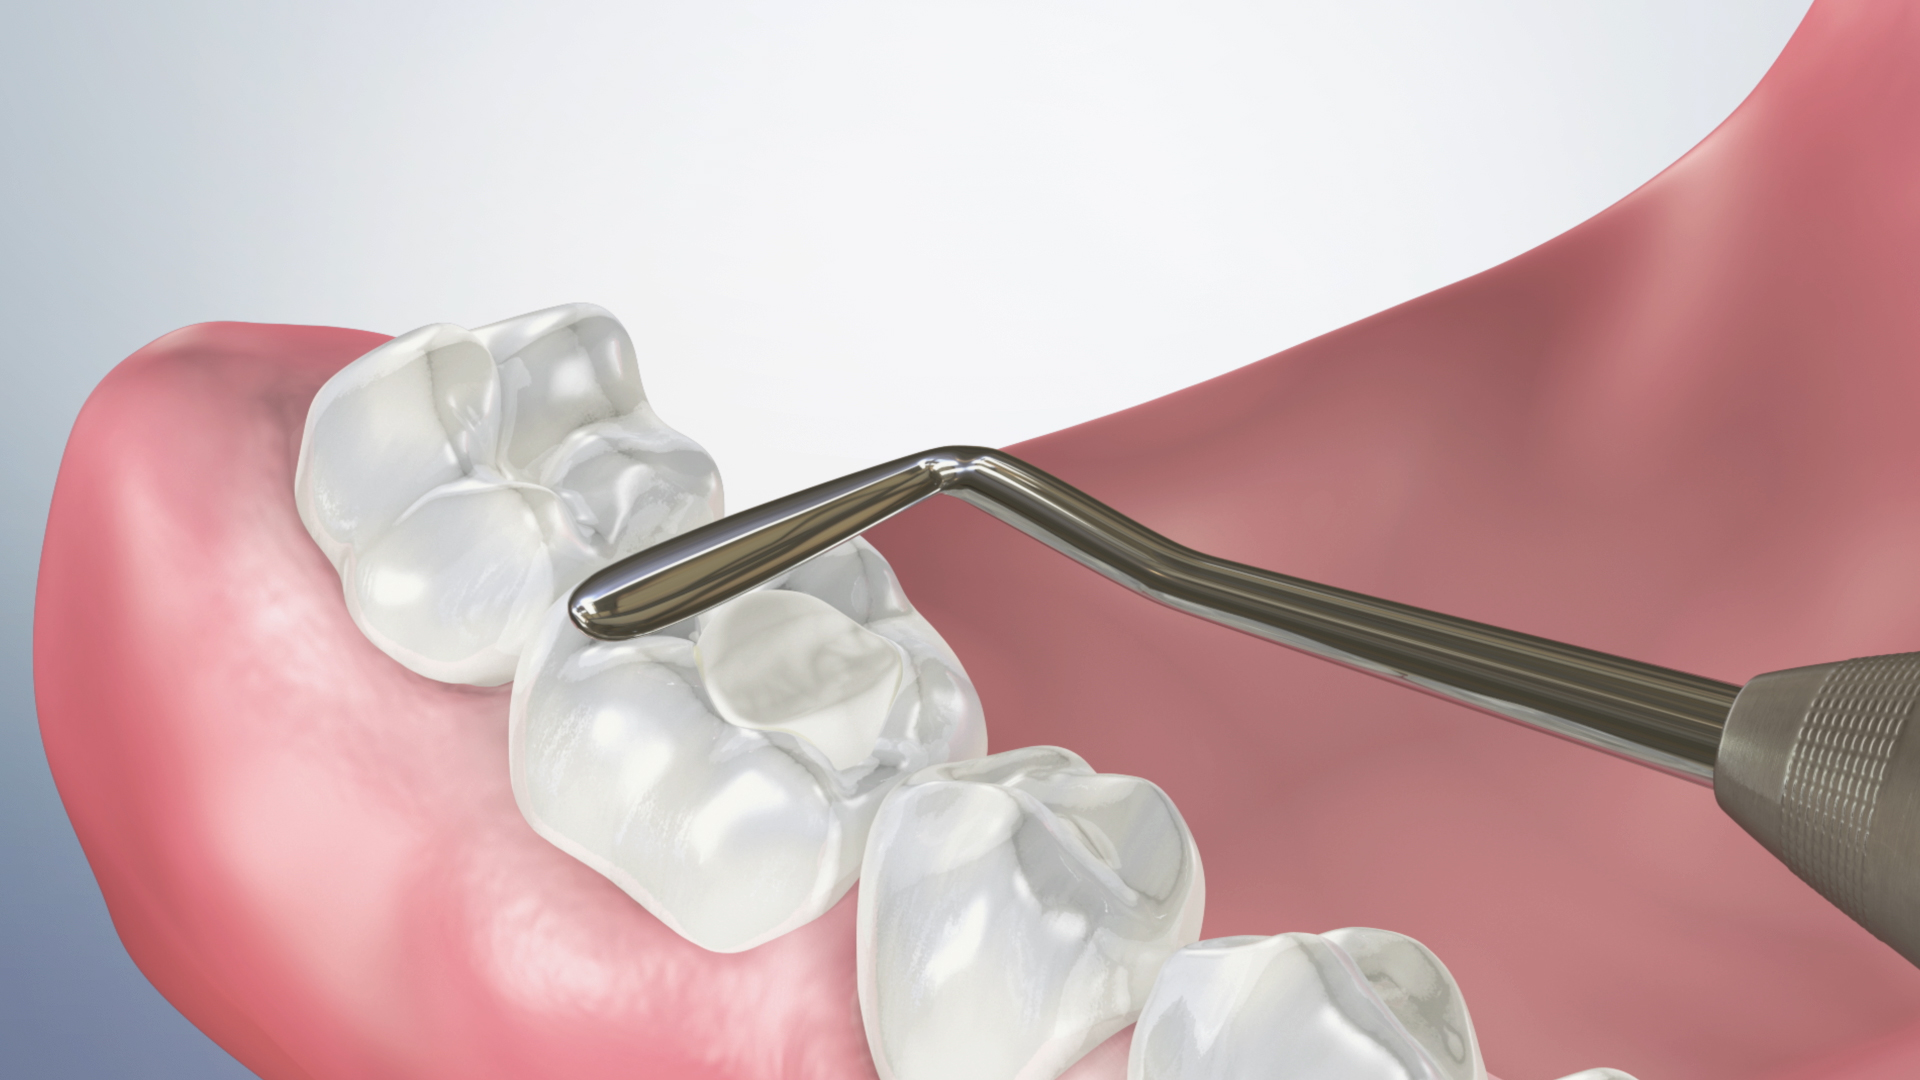 Thumbnail for a video on Composite Filling (Posterior)